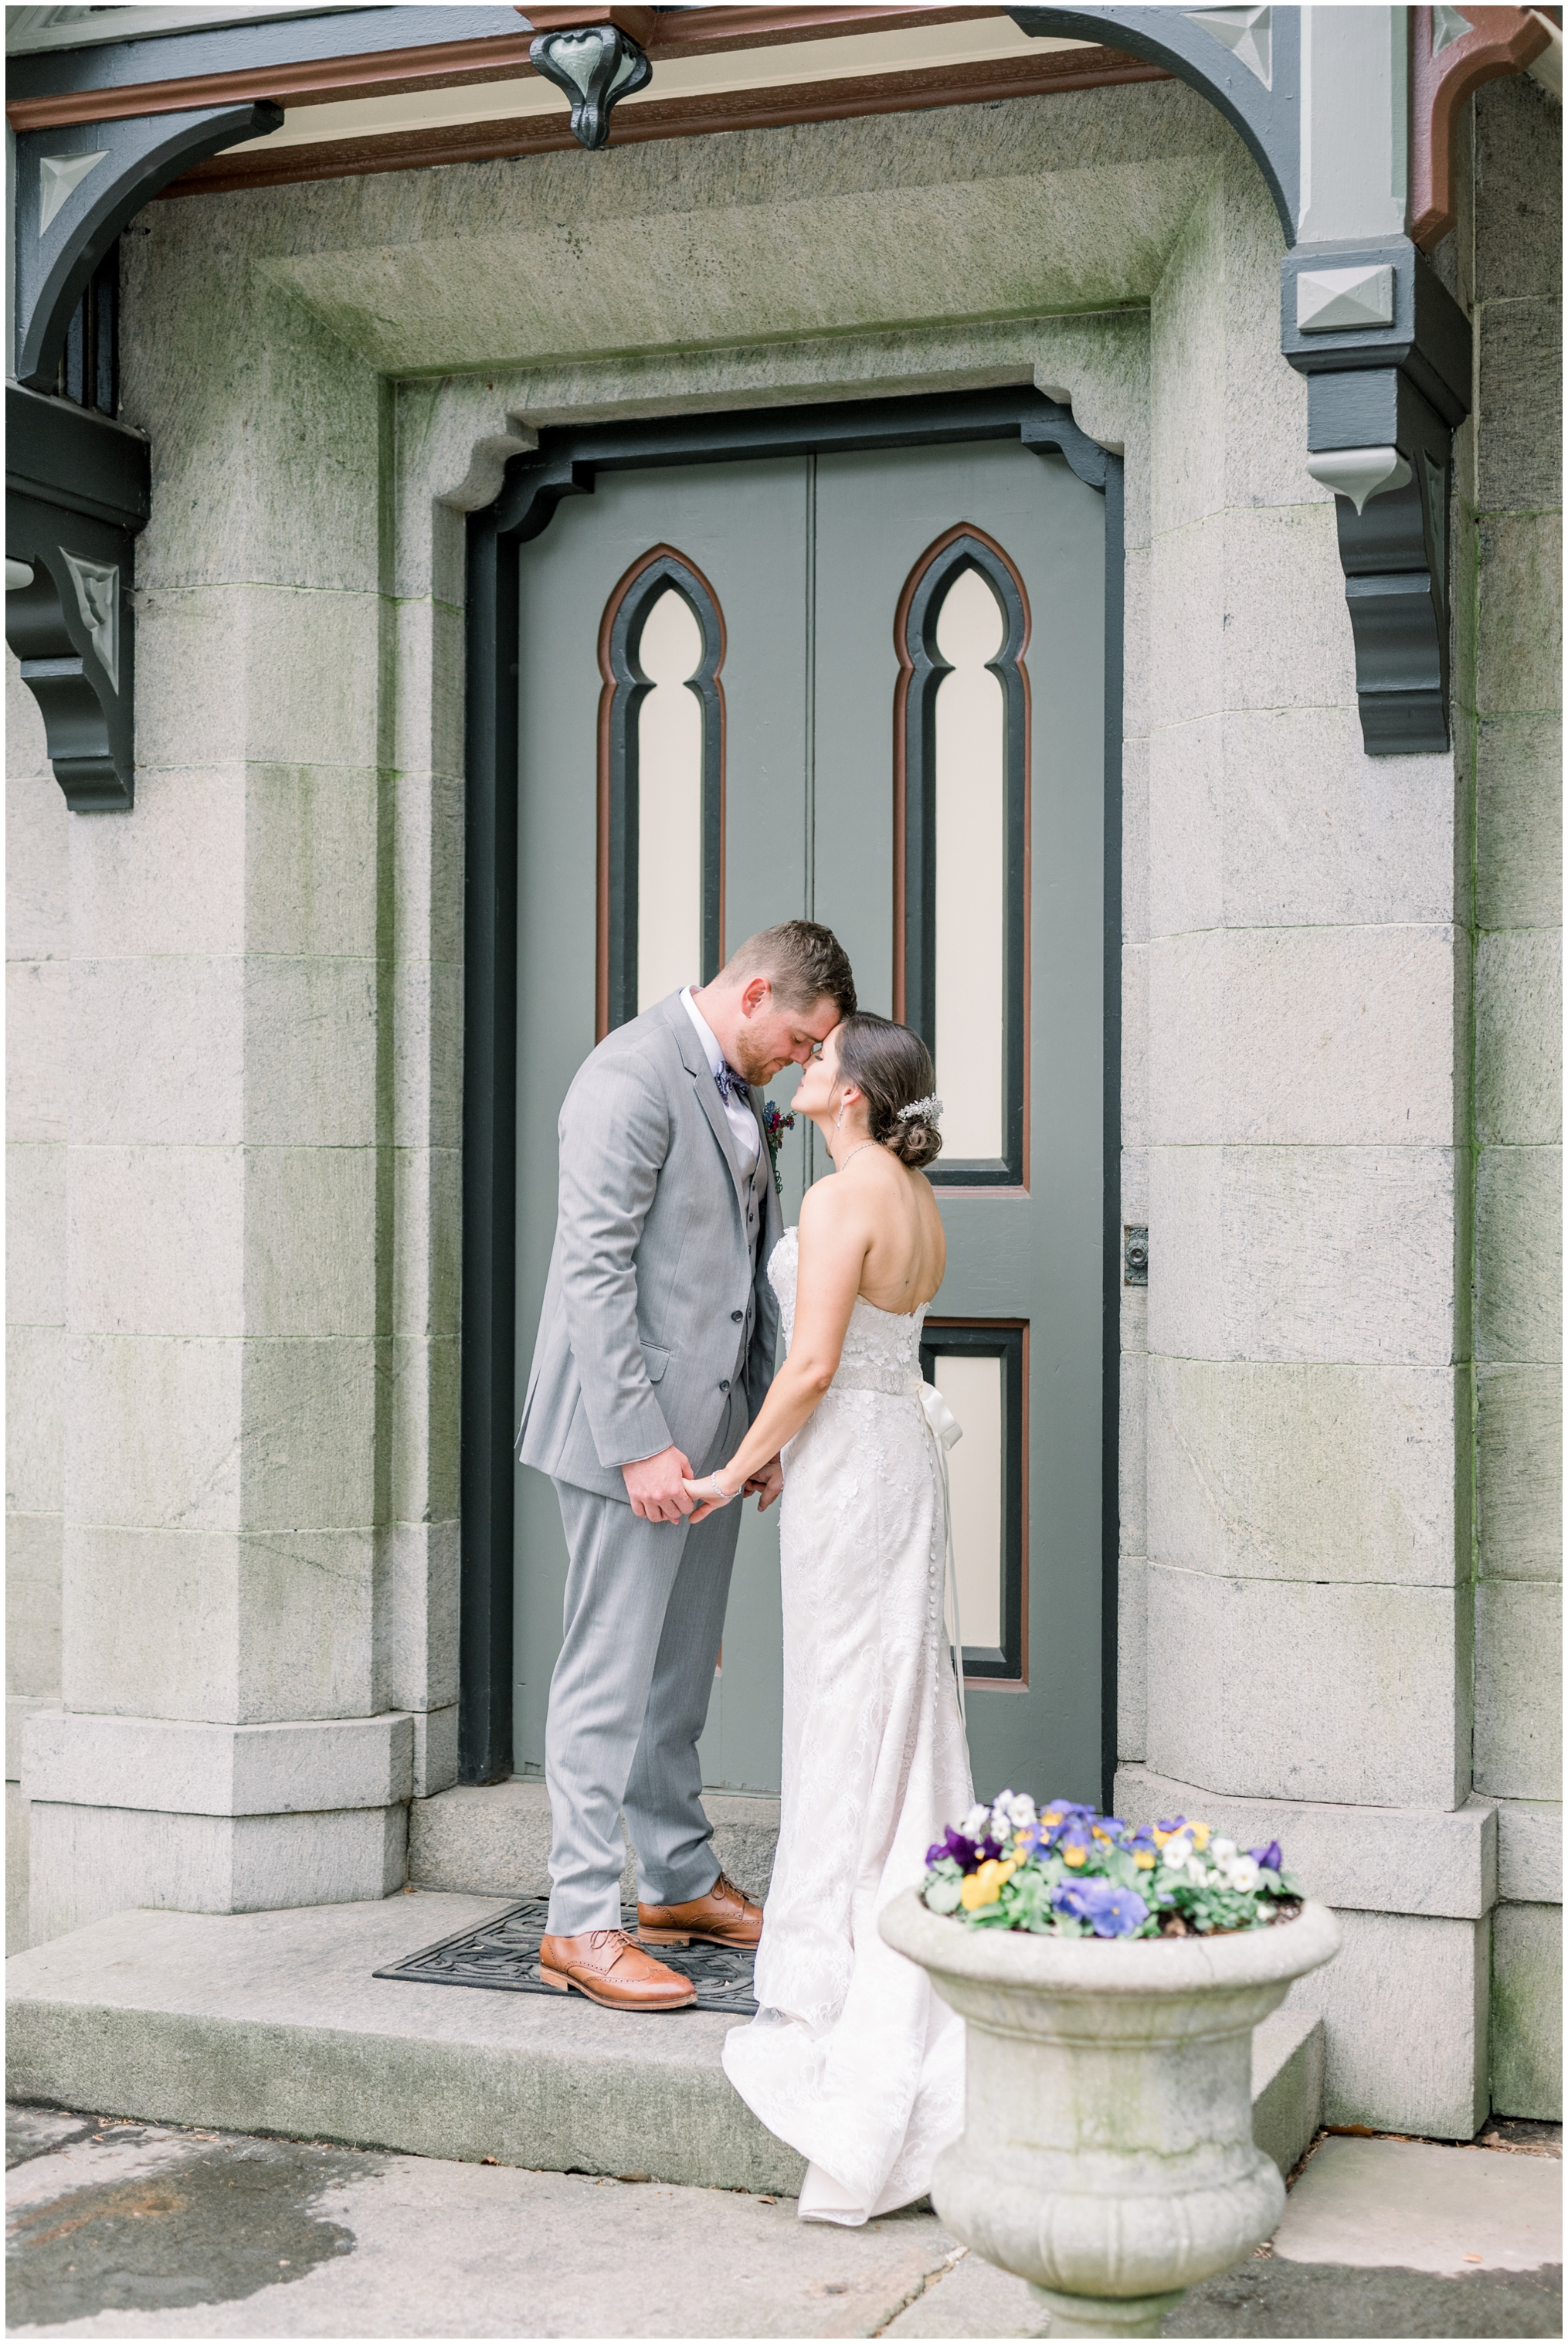 Krista Brackin Photography | April Wedding at The Carriage House at Rockwood Park_0085.jpg